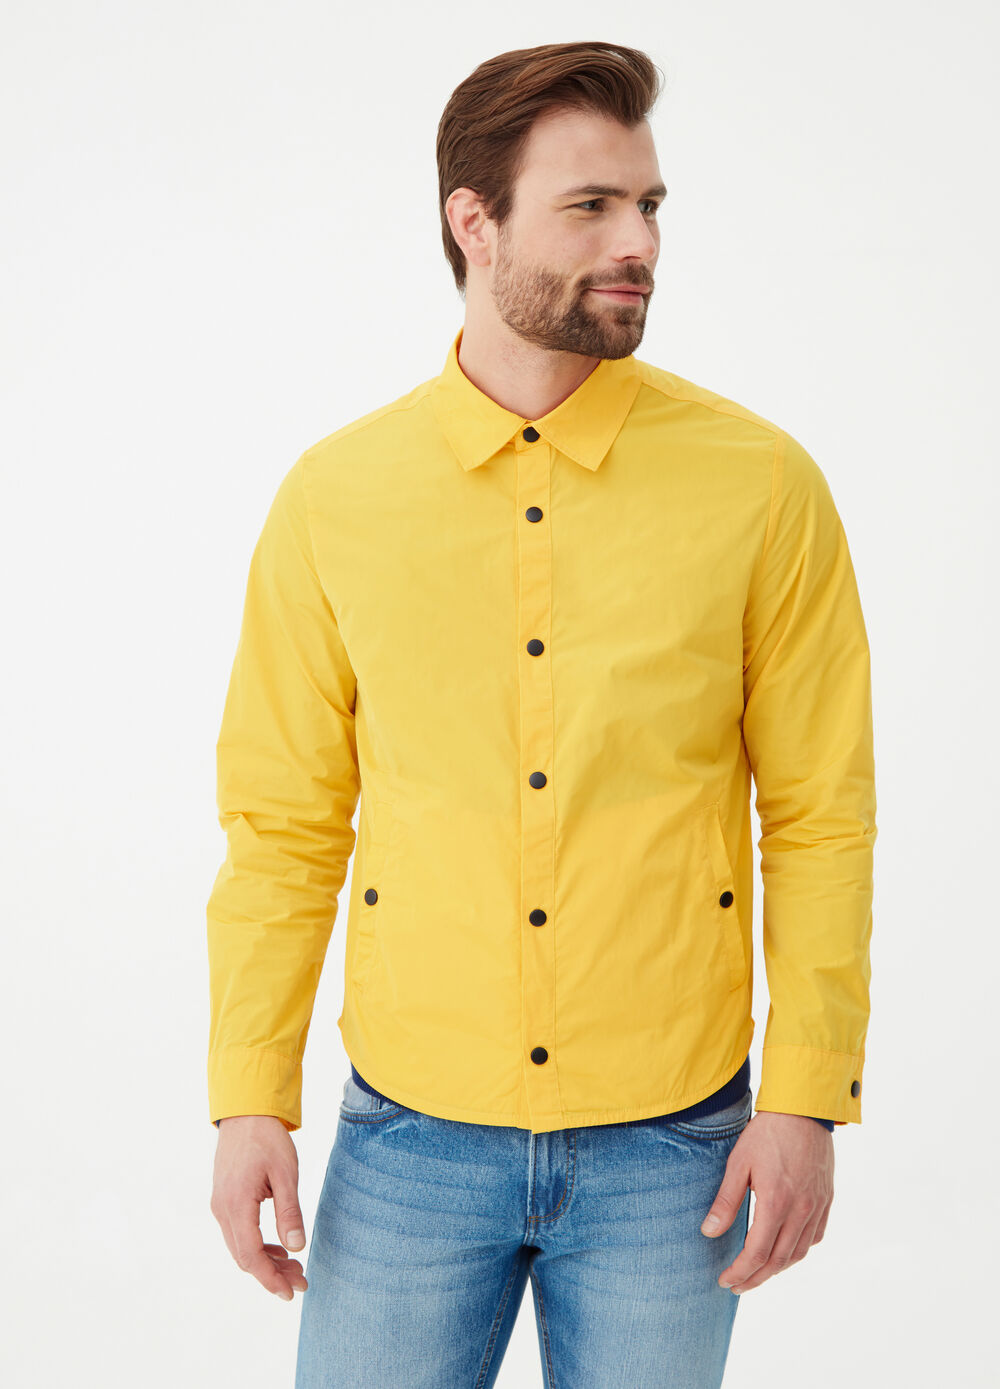 Solid colour jacket with snap buttons